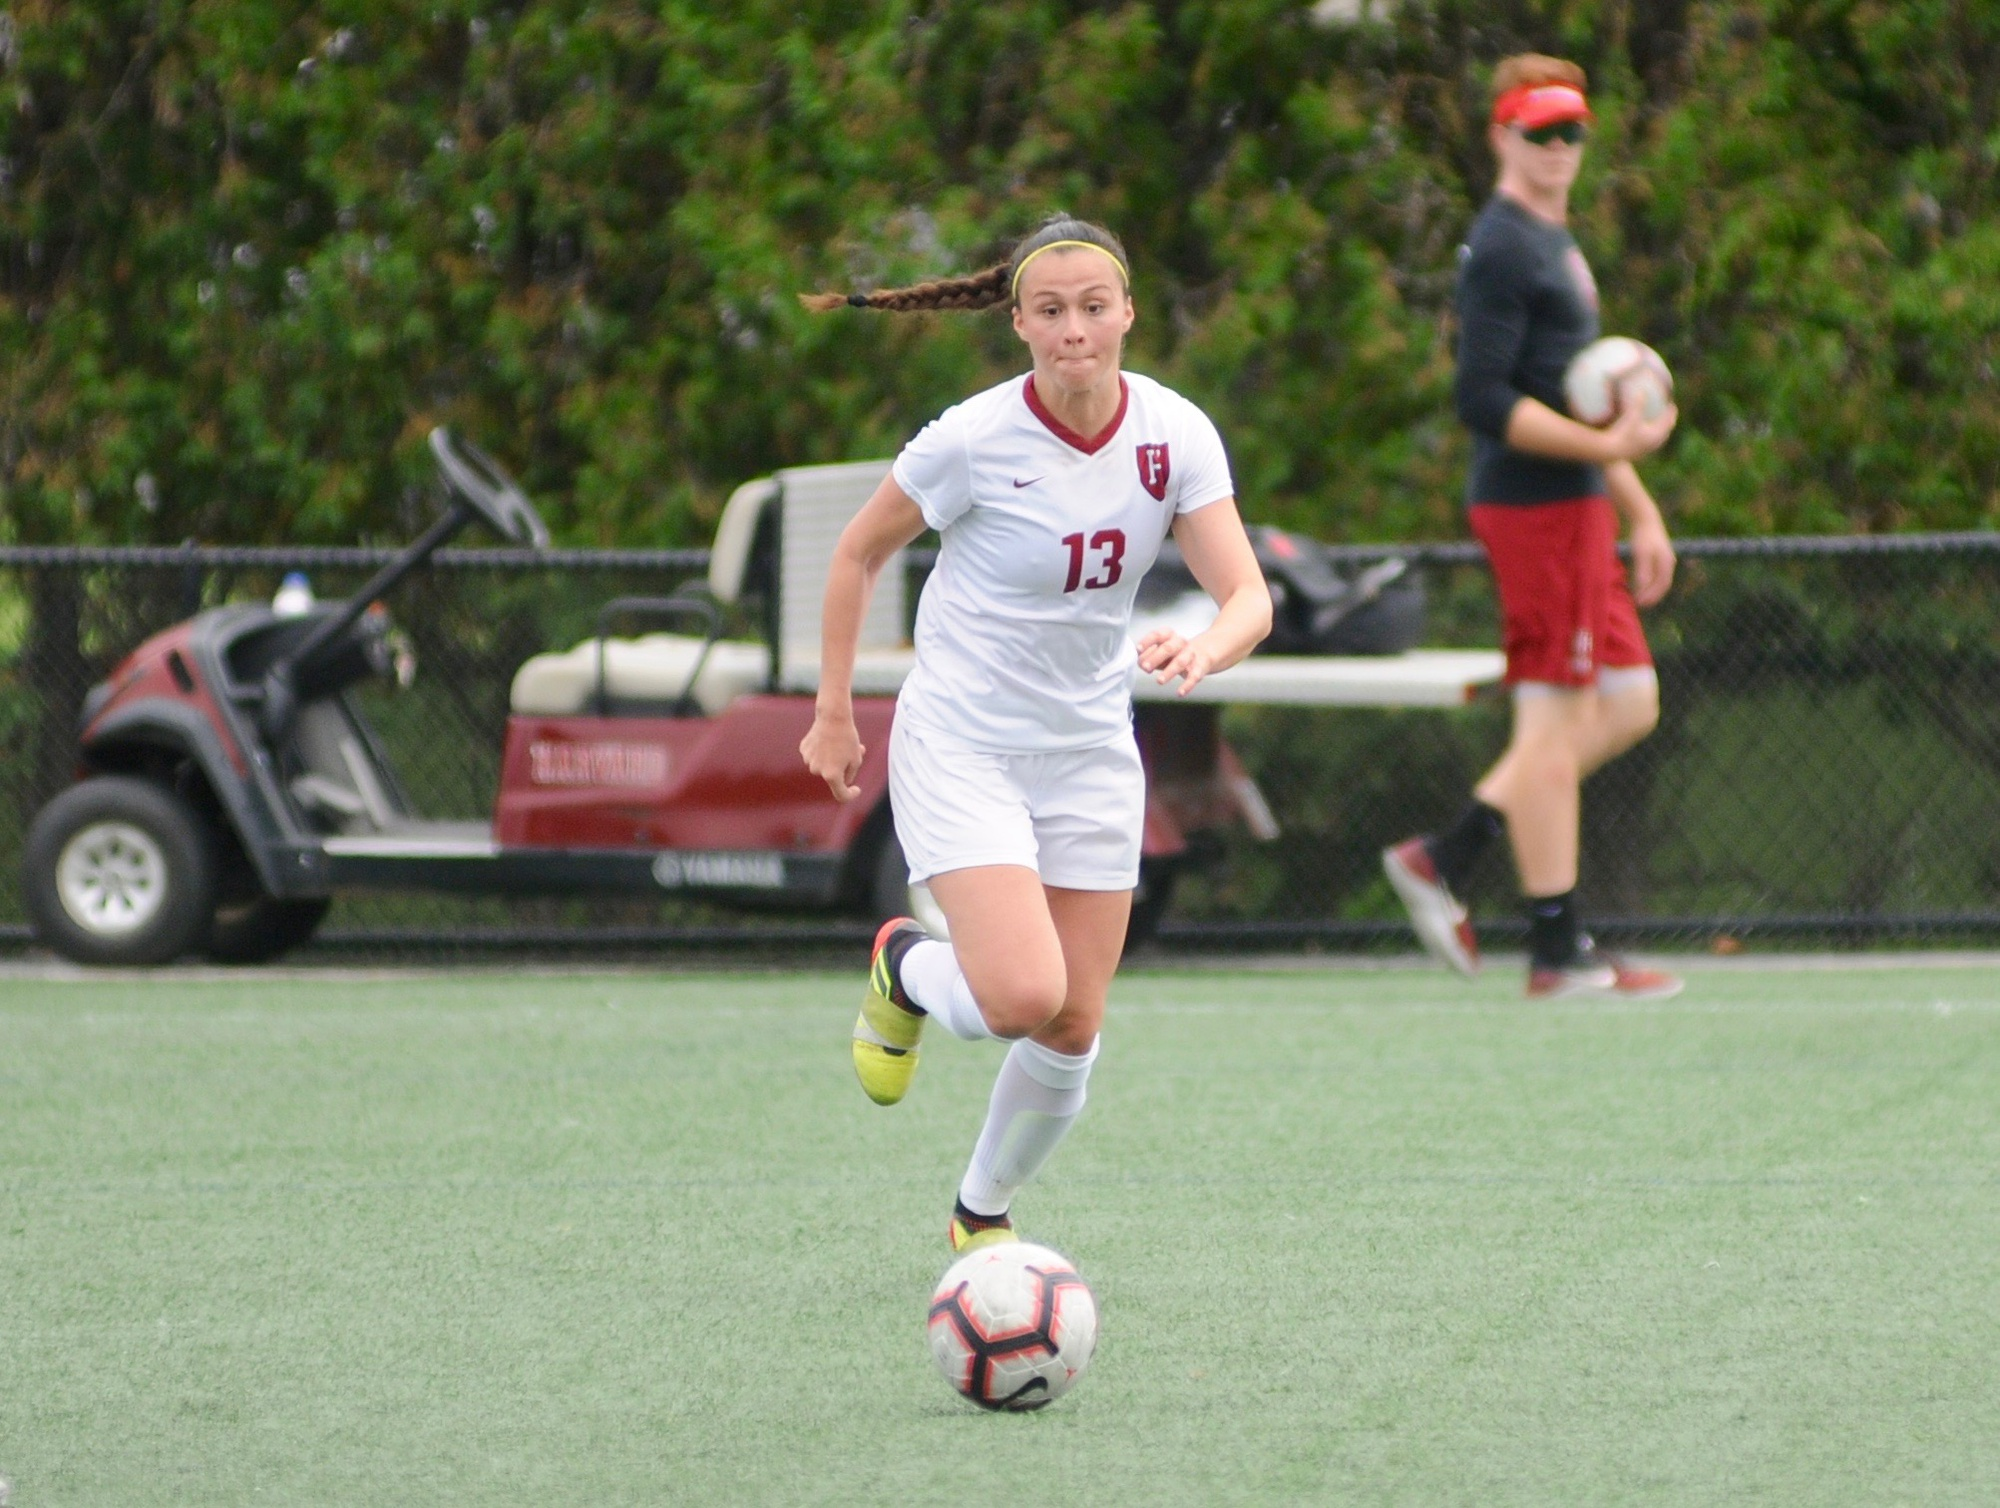 Senior midfielder Leah Mohammadi finished the season with a team-high seven goals, marking the second straight season in which she led the Crimson in scoring.